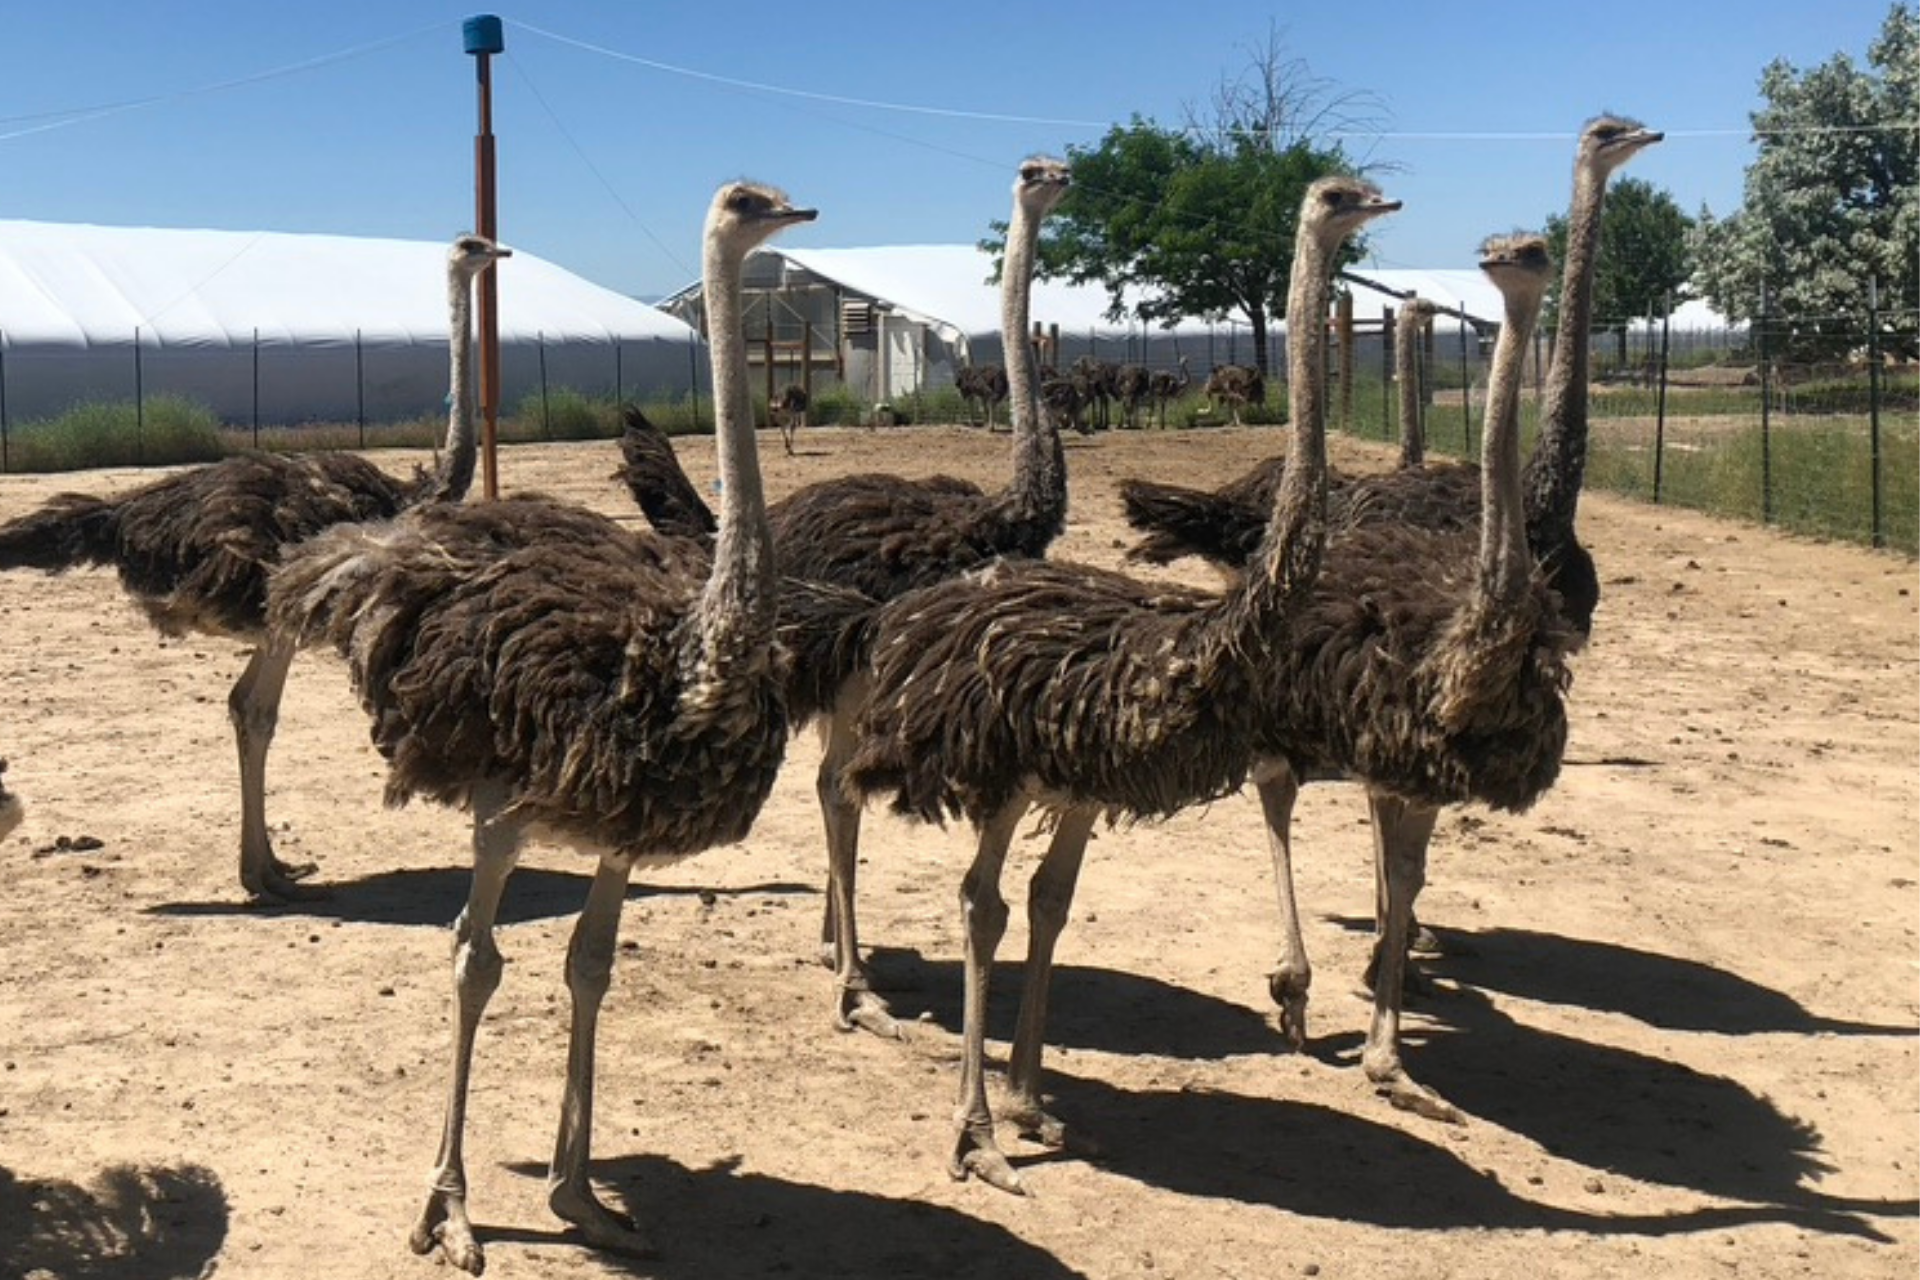 A flock of ostriches.